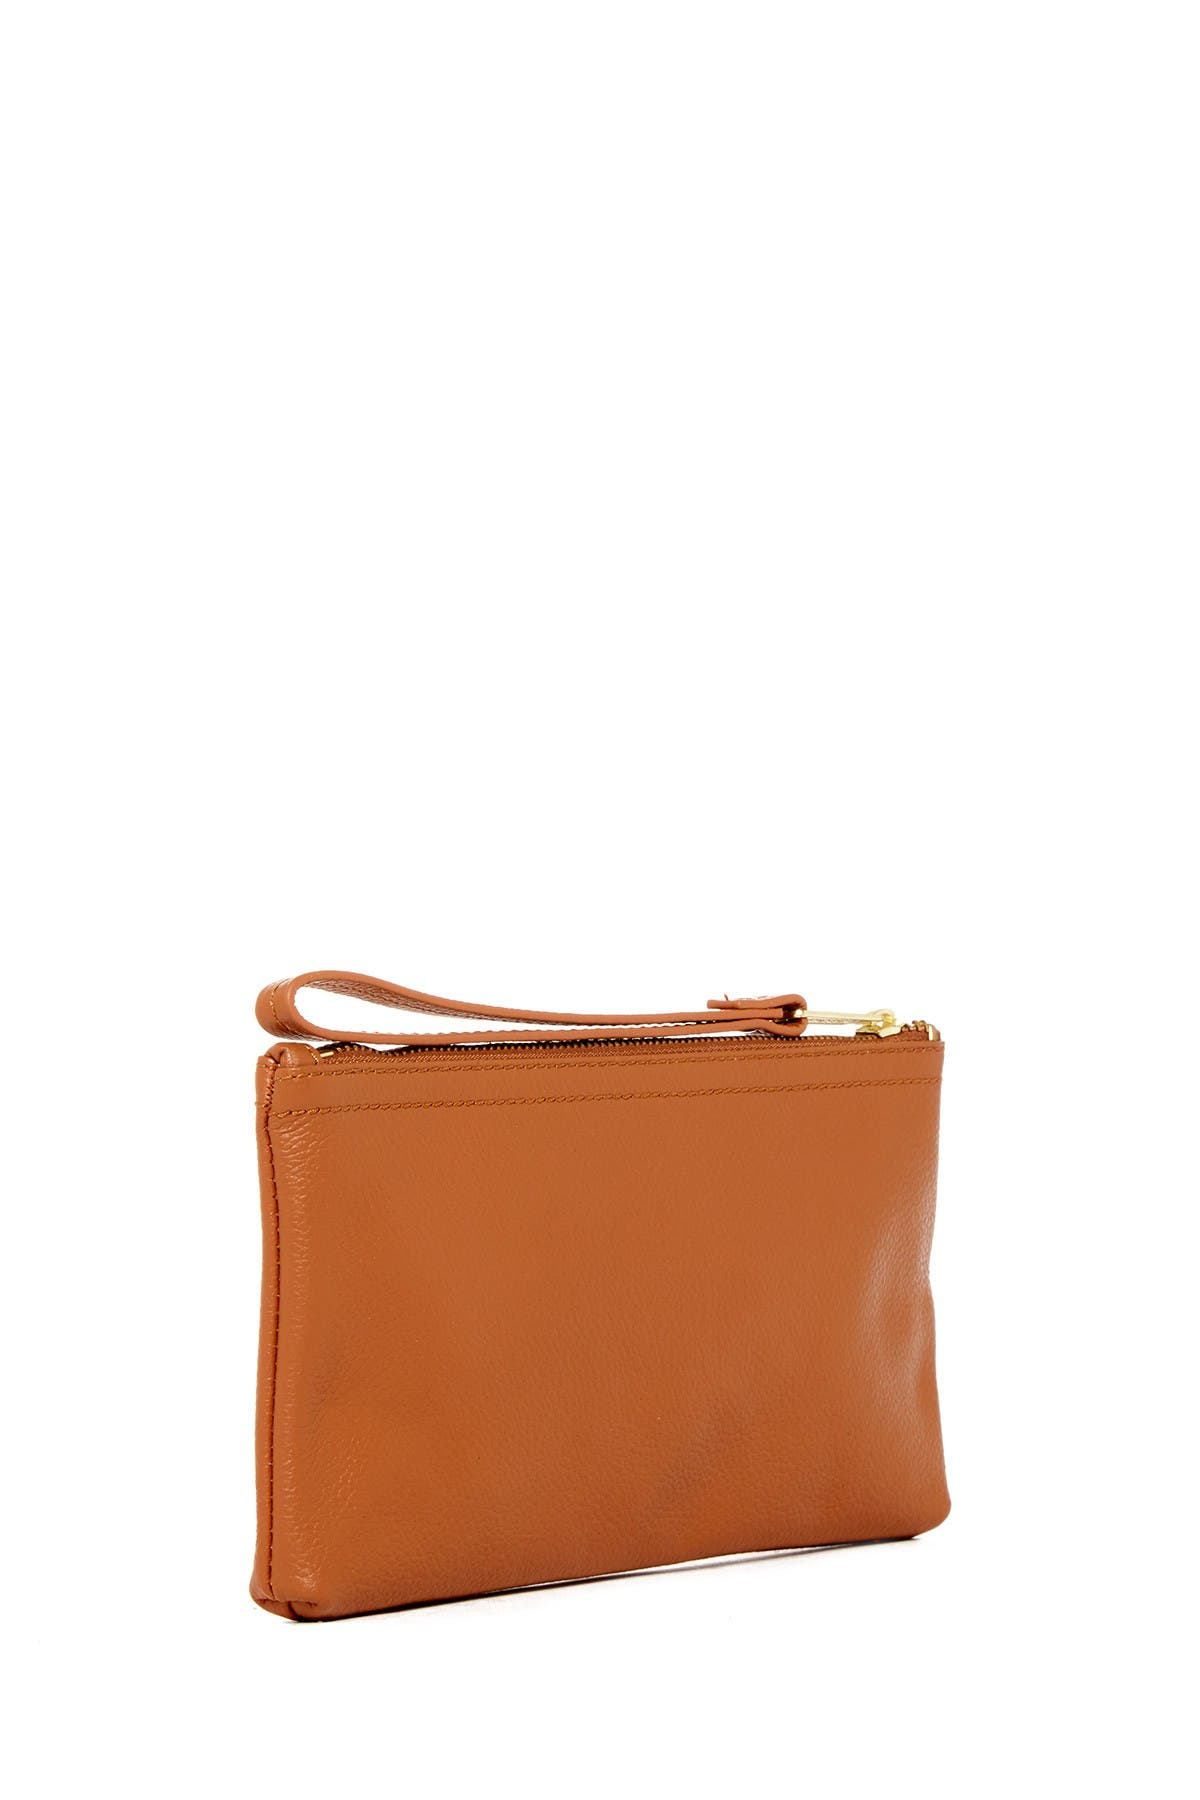 Image of Herschel Supply Co. Casey Leather Zip Wrist Pouch